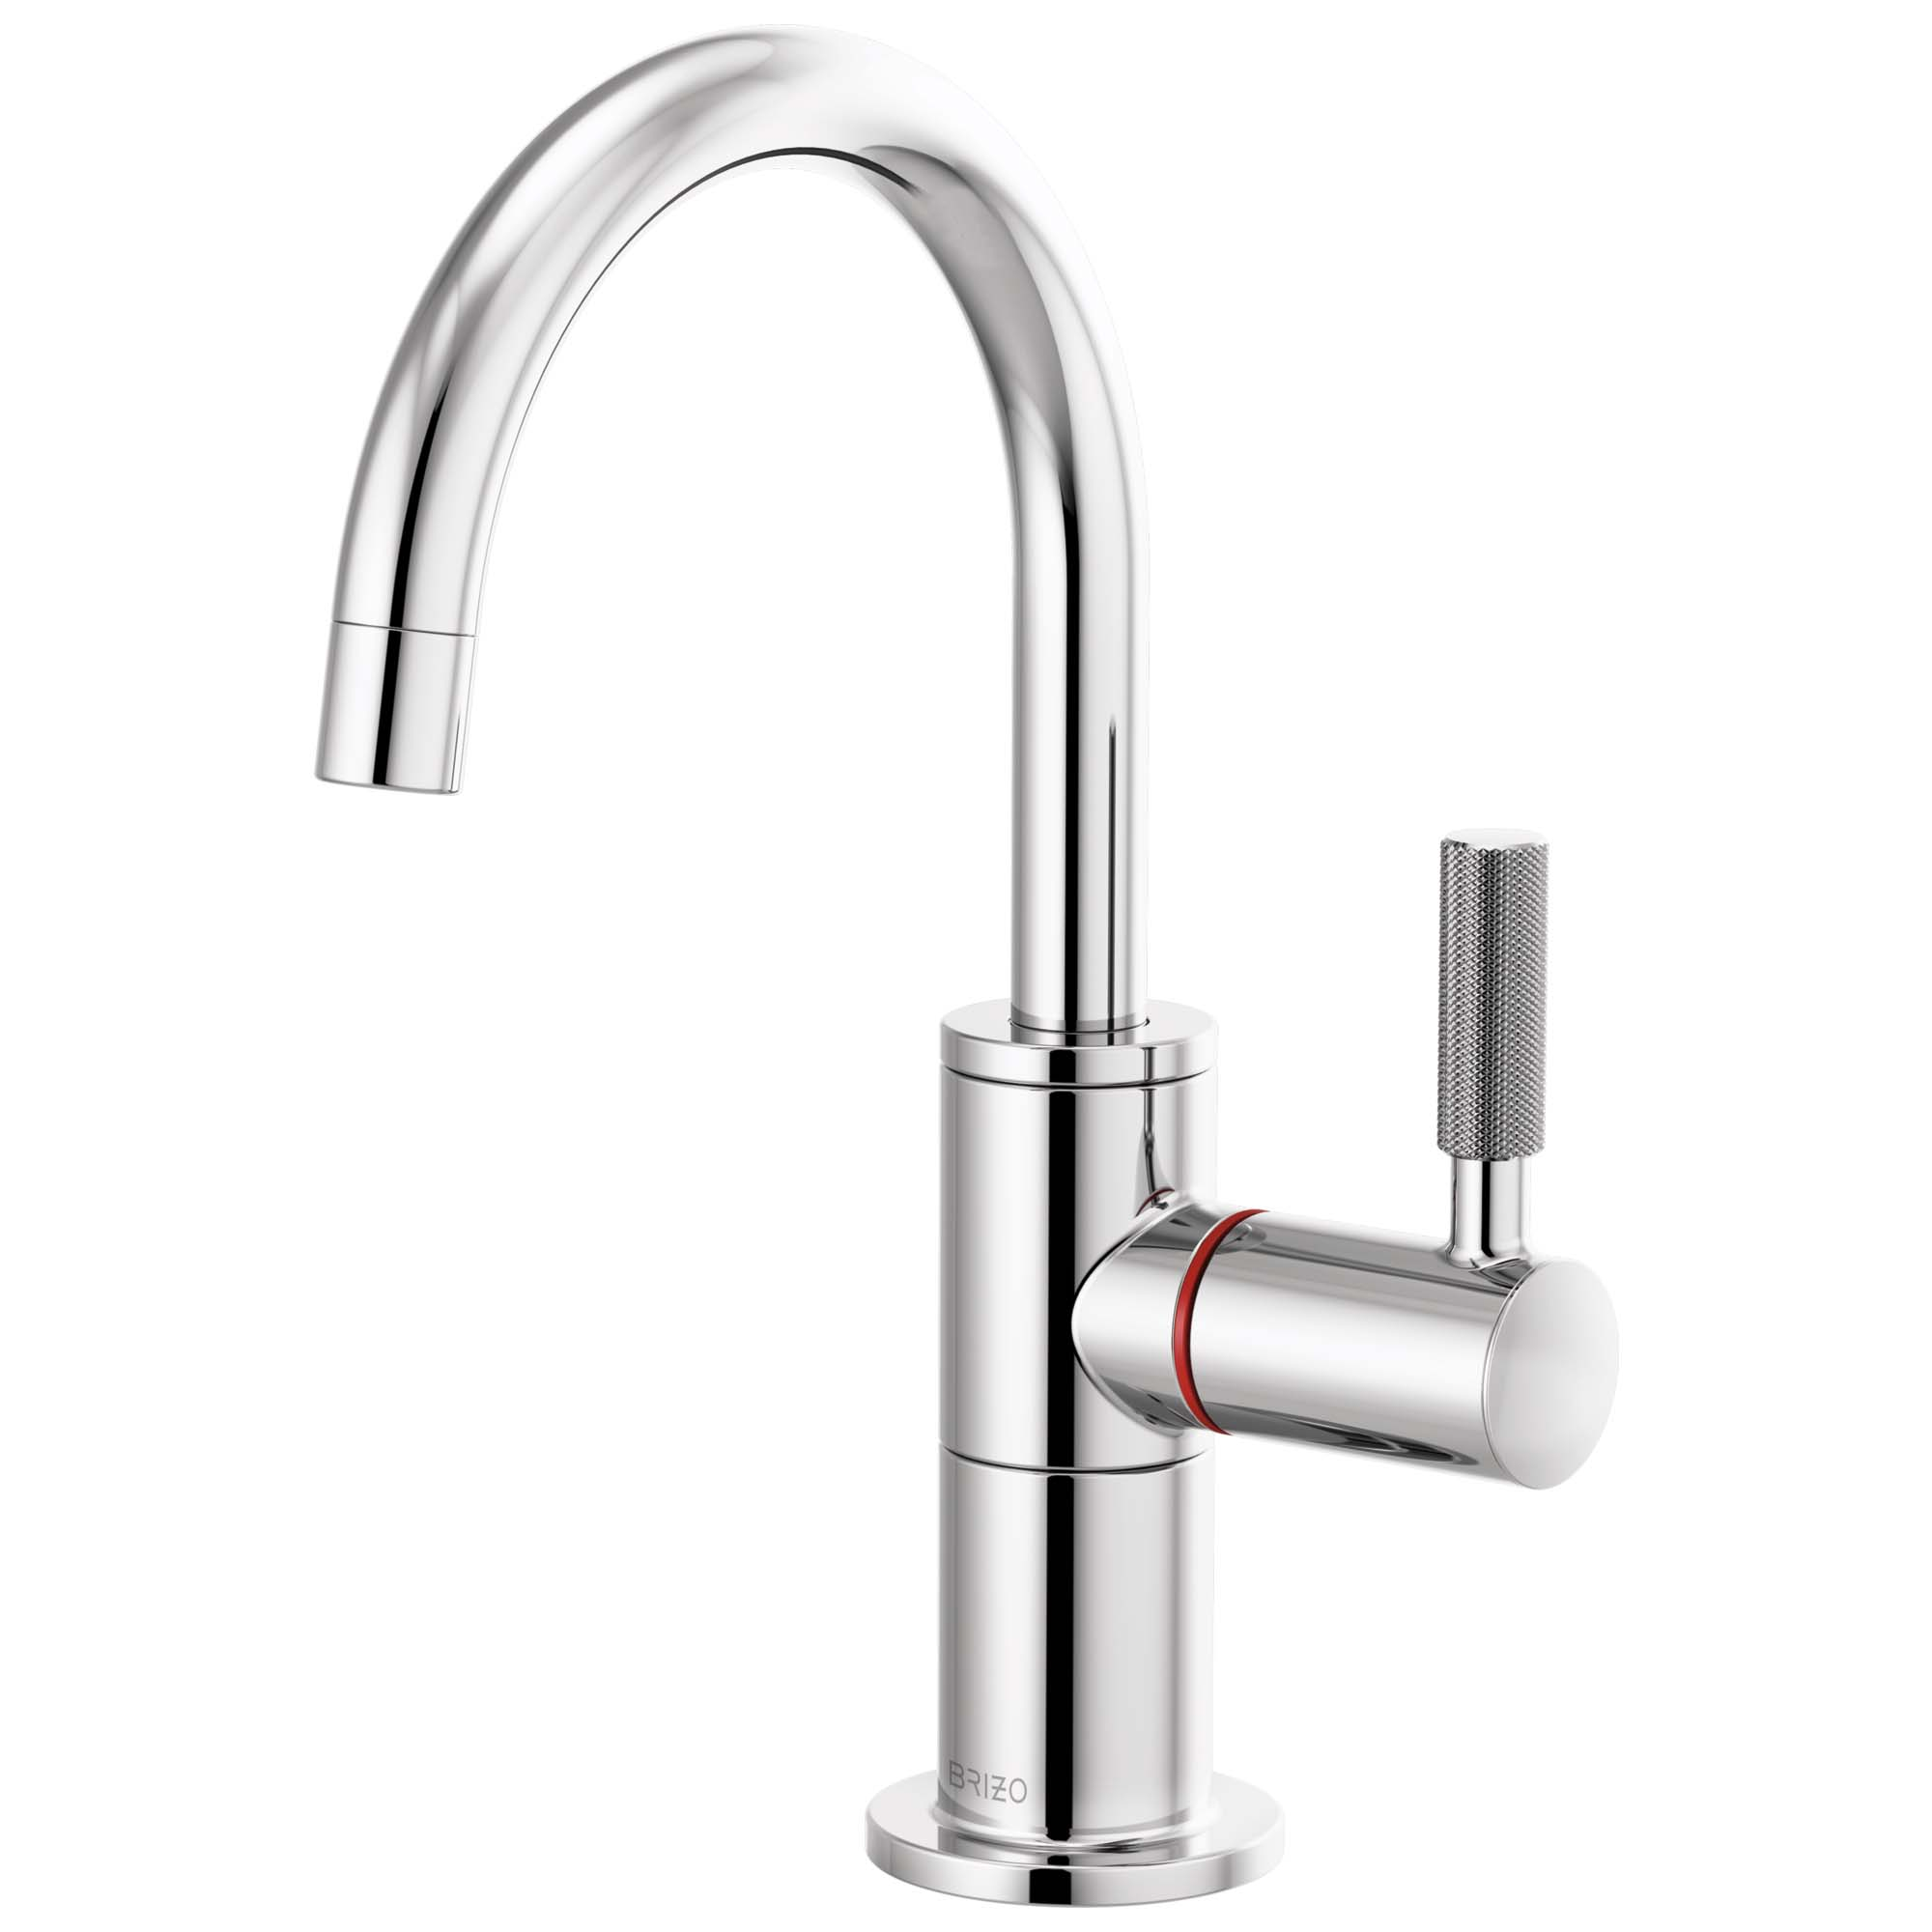 Brizo 61343LF-H-PC Litze Instant Hot Faucet with Arc Spout and Knurled Handle - Chrome